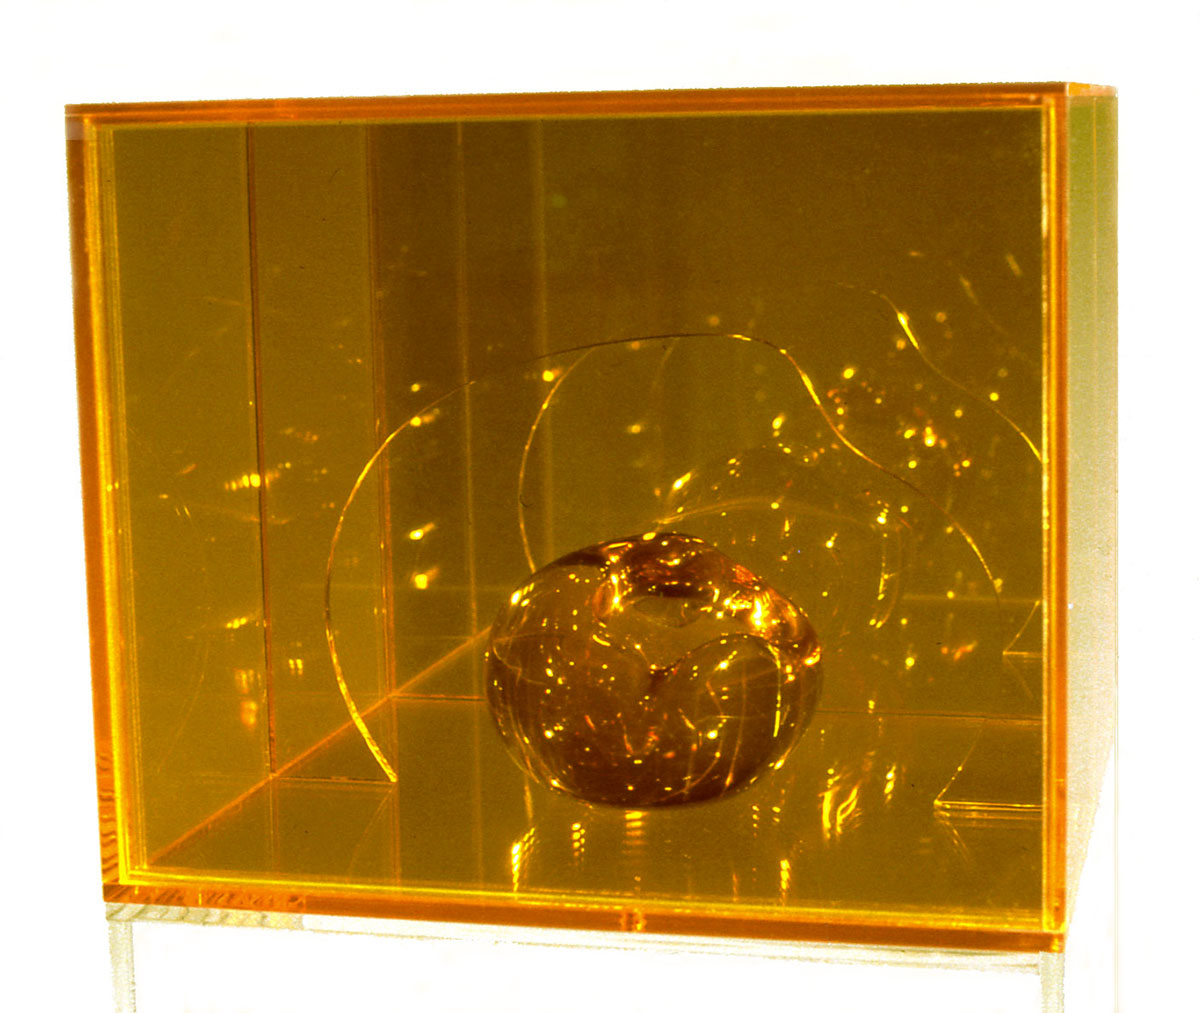 """Yeller Heller, 1967  Resin and Acrylic with Coated Glass  12""""x12""""x12"""""""